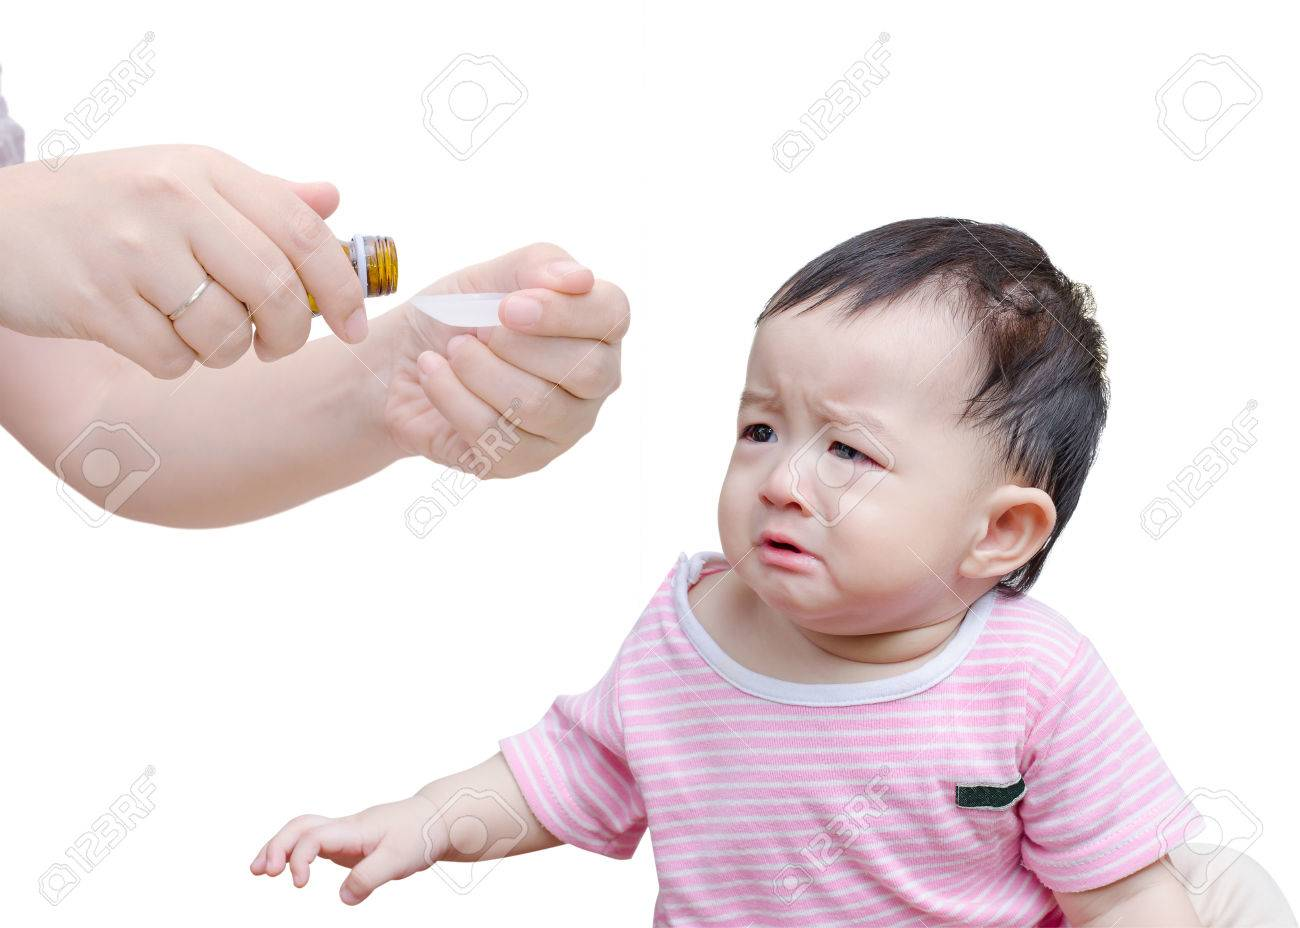 Woman's hands pouring medicine in a spoon foreground and crying baby over white background Stock Photo - 43163449